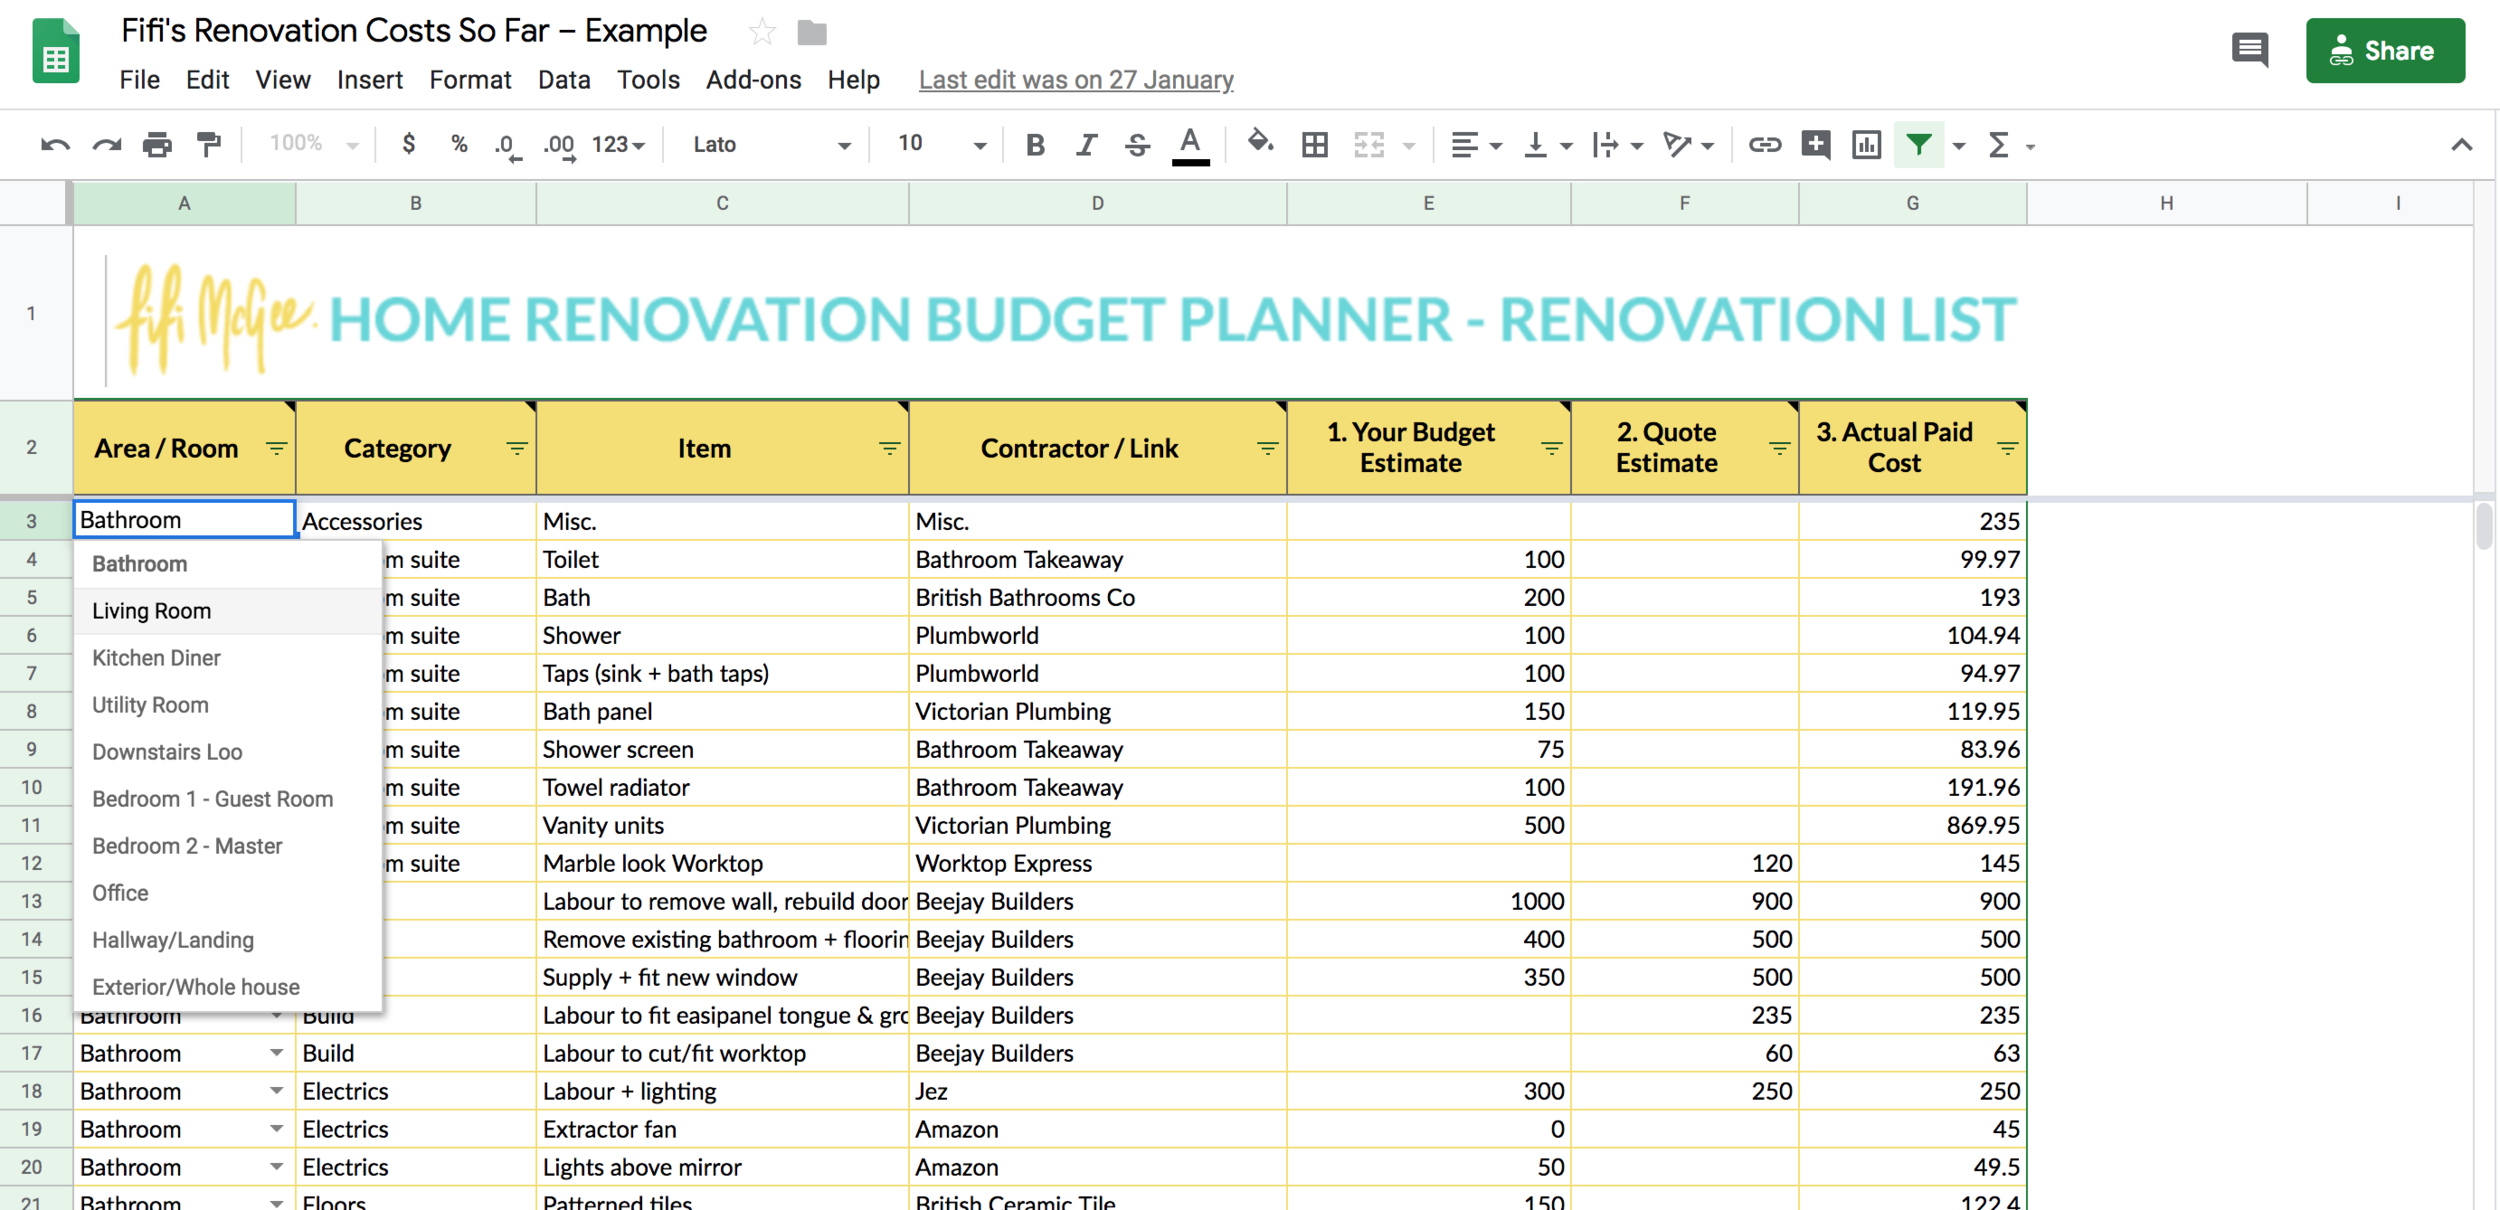 Home Renovation Budget Planner